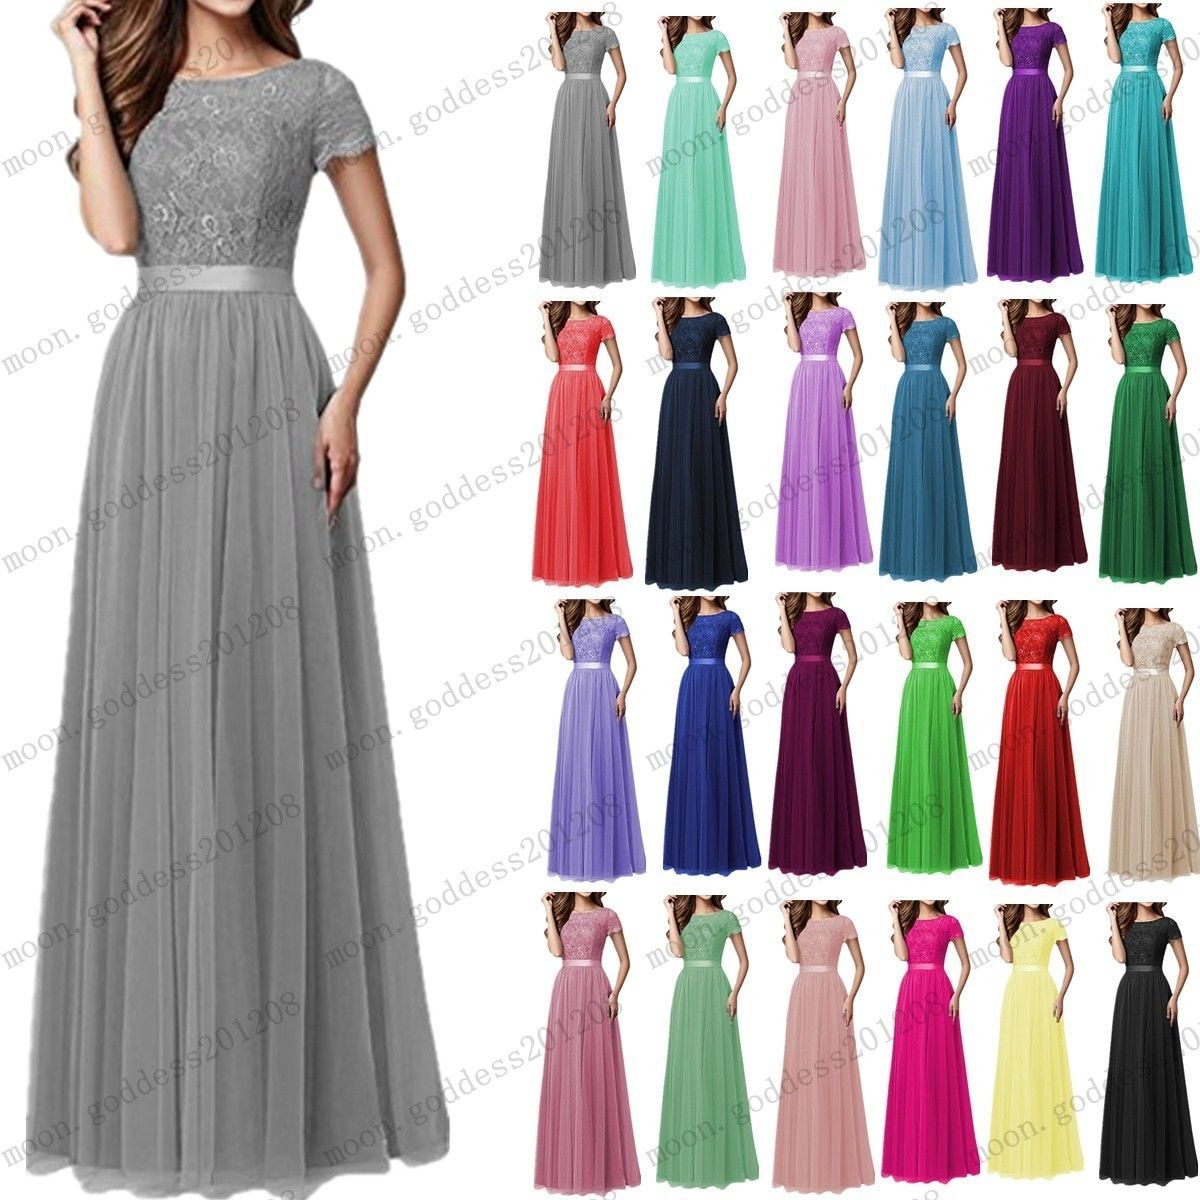 Cool amazing long chiffon lace evening formal party ball gown prom